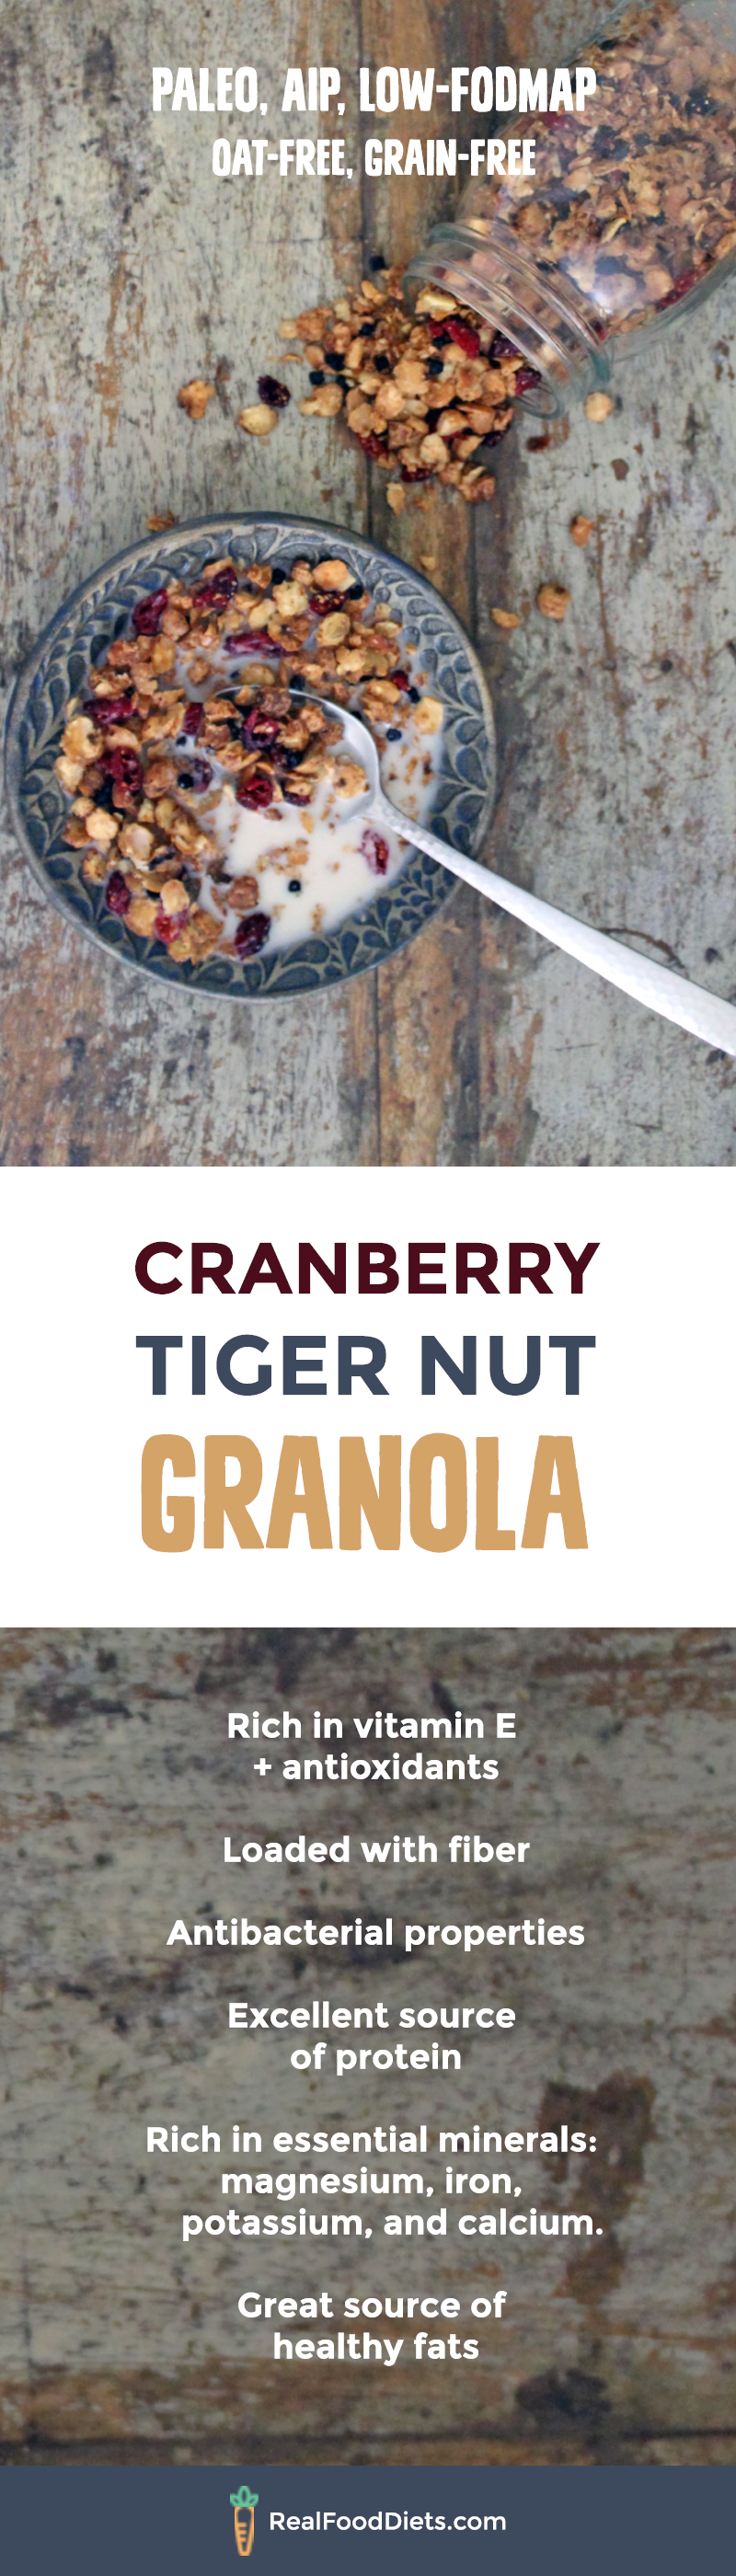 This oat free granola is sweet, crunchy, and oh so nourishing, even more so when doused in homemade tiger nut milk. You can follow the recipe to make the crunchy tiger nut base and then pretty much add in any other ingredients that take your fancy! //Safe for paleo, aip (autoimmune protocol), and low fodmap diets and is grain free and gluten free.